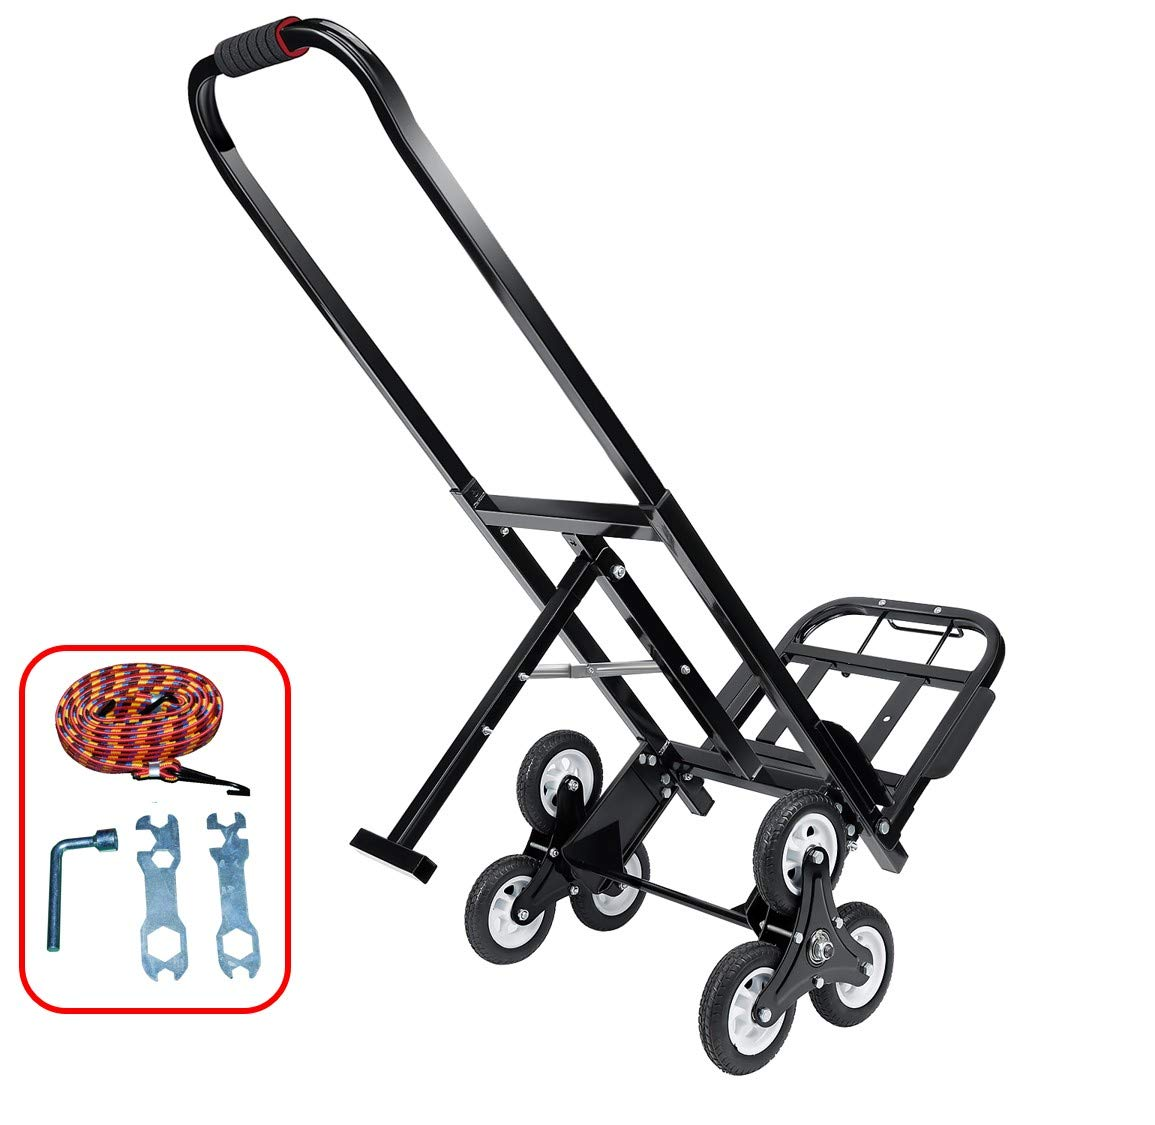 Mecete Stair Climbing Cart Portable Climbing Cart 330 lb Largest Capacity All Terrain Stair Climbing Hand Truck Heavy Duty with 6 Wheels (Black) Baking Varnish Surface Shining by Mecete